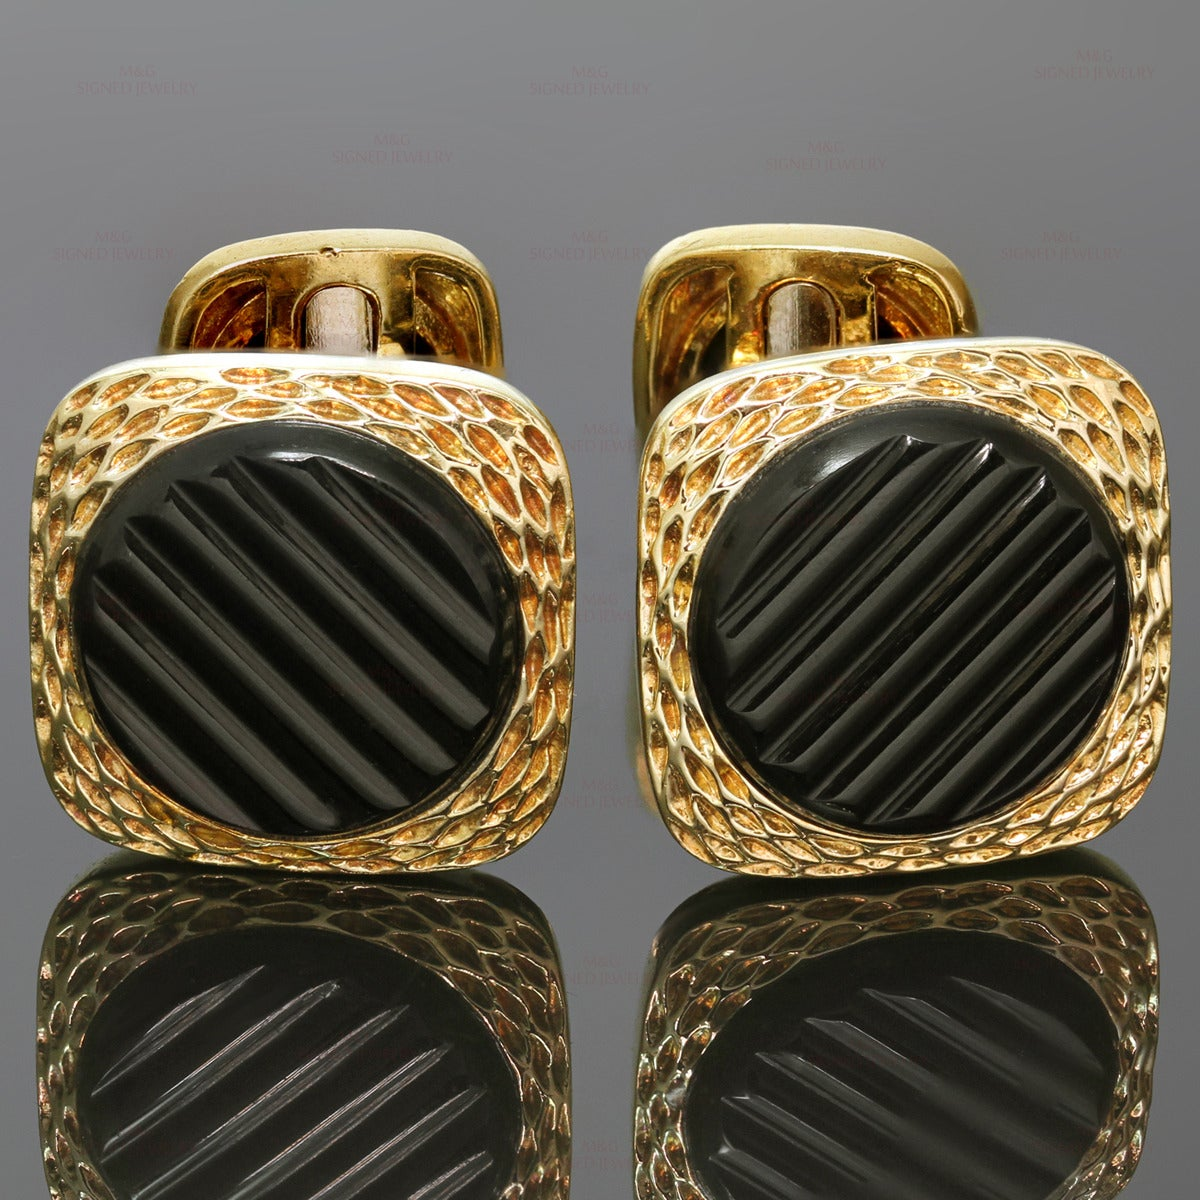 "These elegant vintage Van Cleef & Arpels cufflinks feature a textured square design made in 18k yellow gold and set with ridged round black onyx stones. Made in France circa 1970s. Measurements: 0.70"" (18mm) width, 0.70"" (18mm) length."